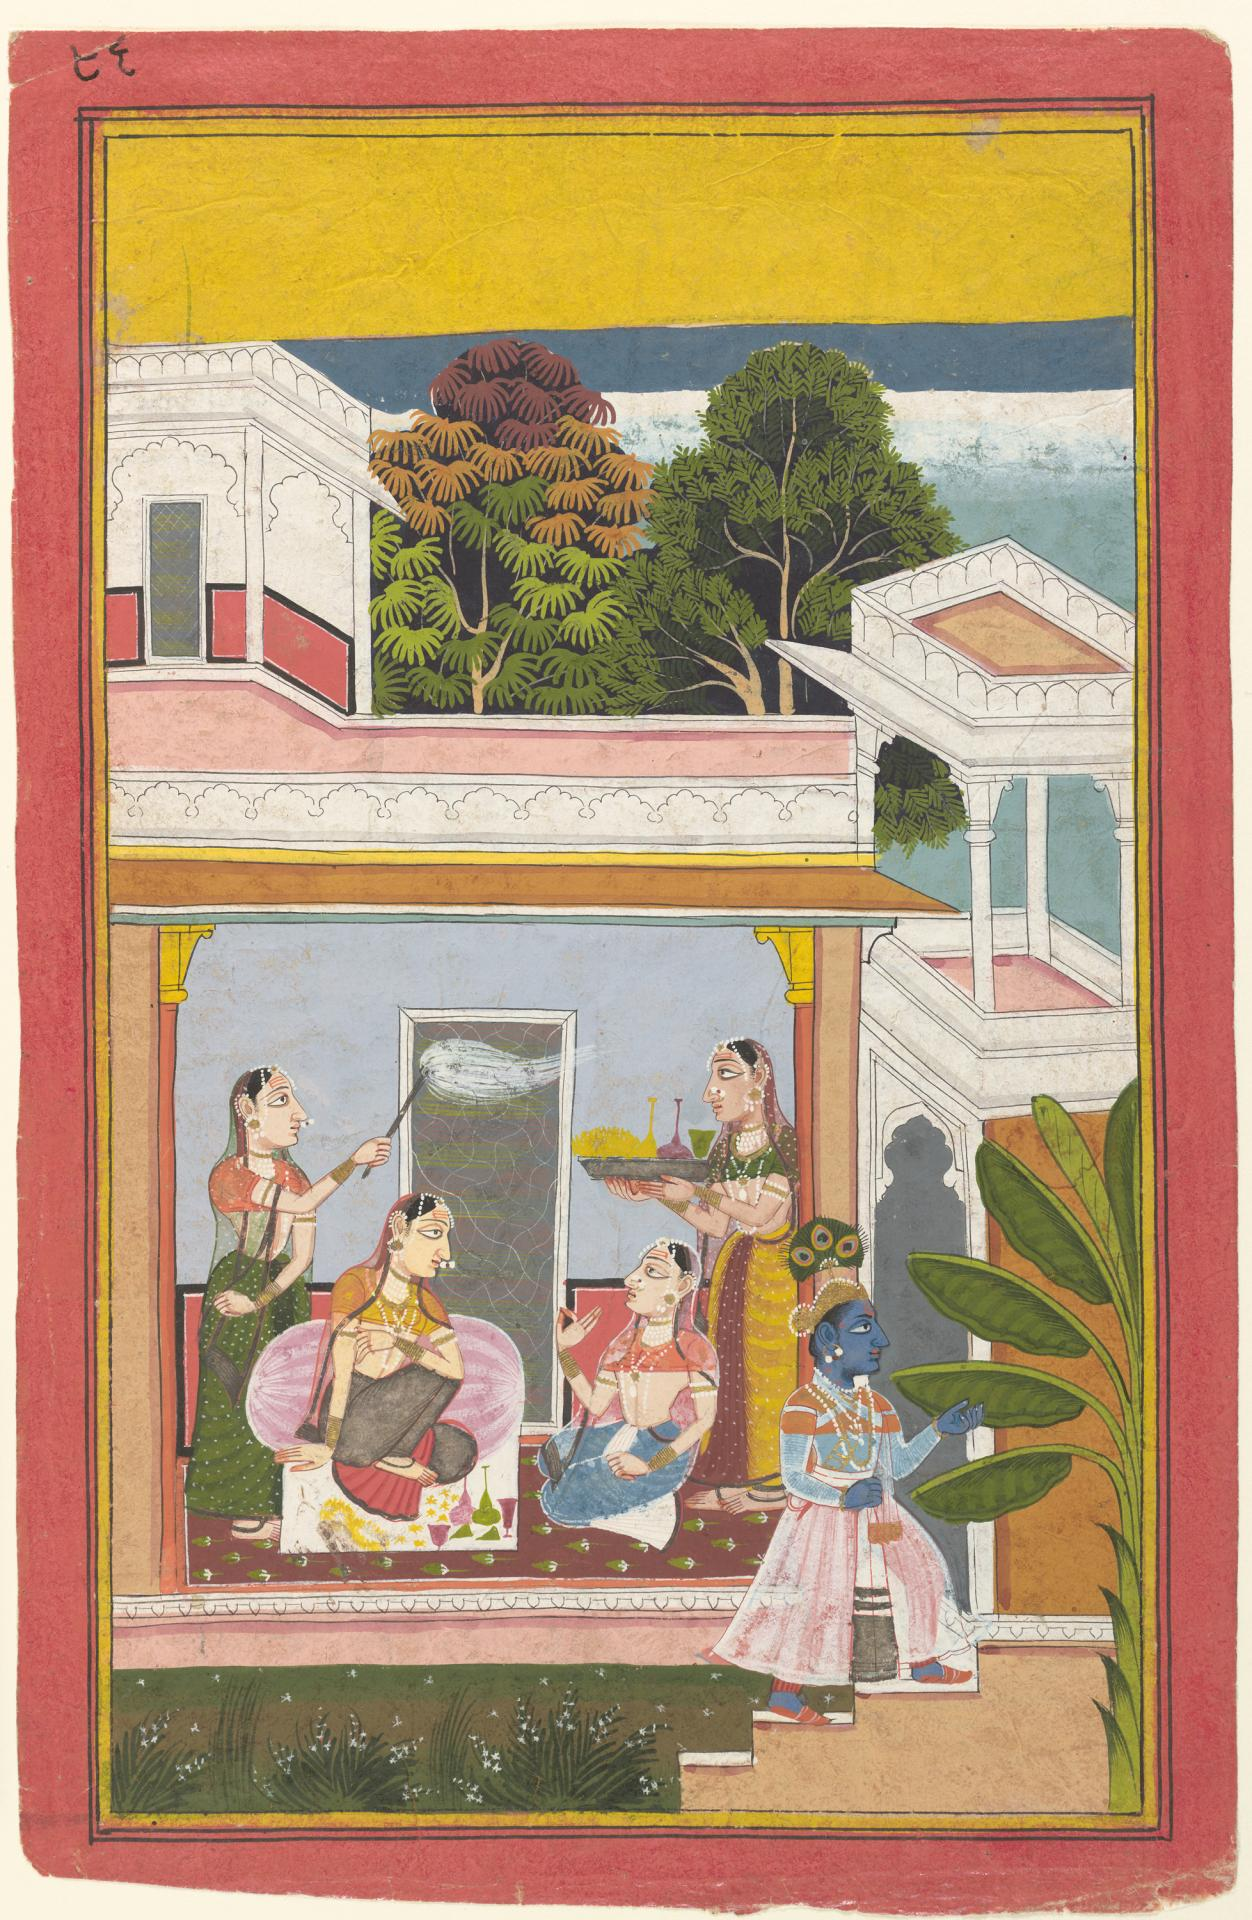 The sakhi converses with Radha in a chamber